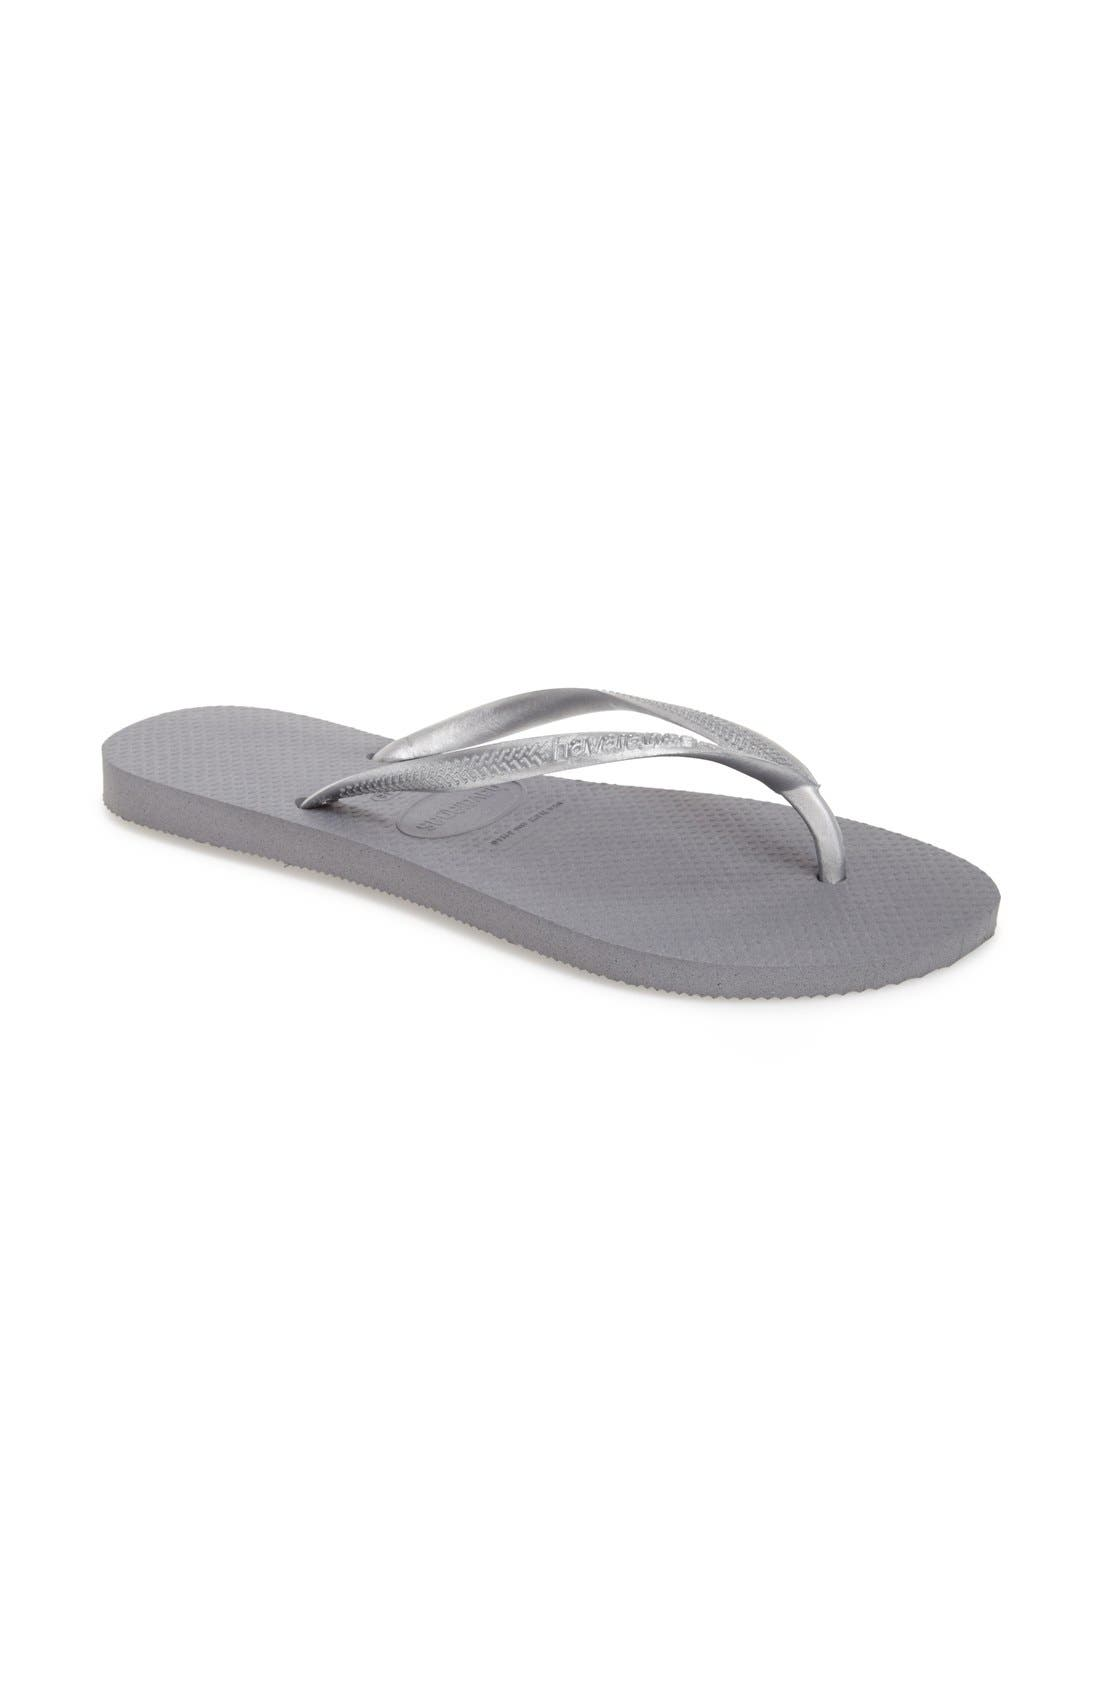 'Slim' Flip Flop,                         Main,                         color, STEEL GREY